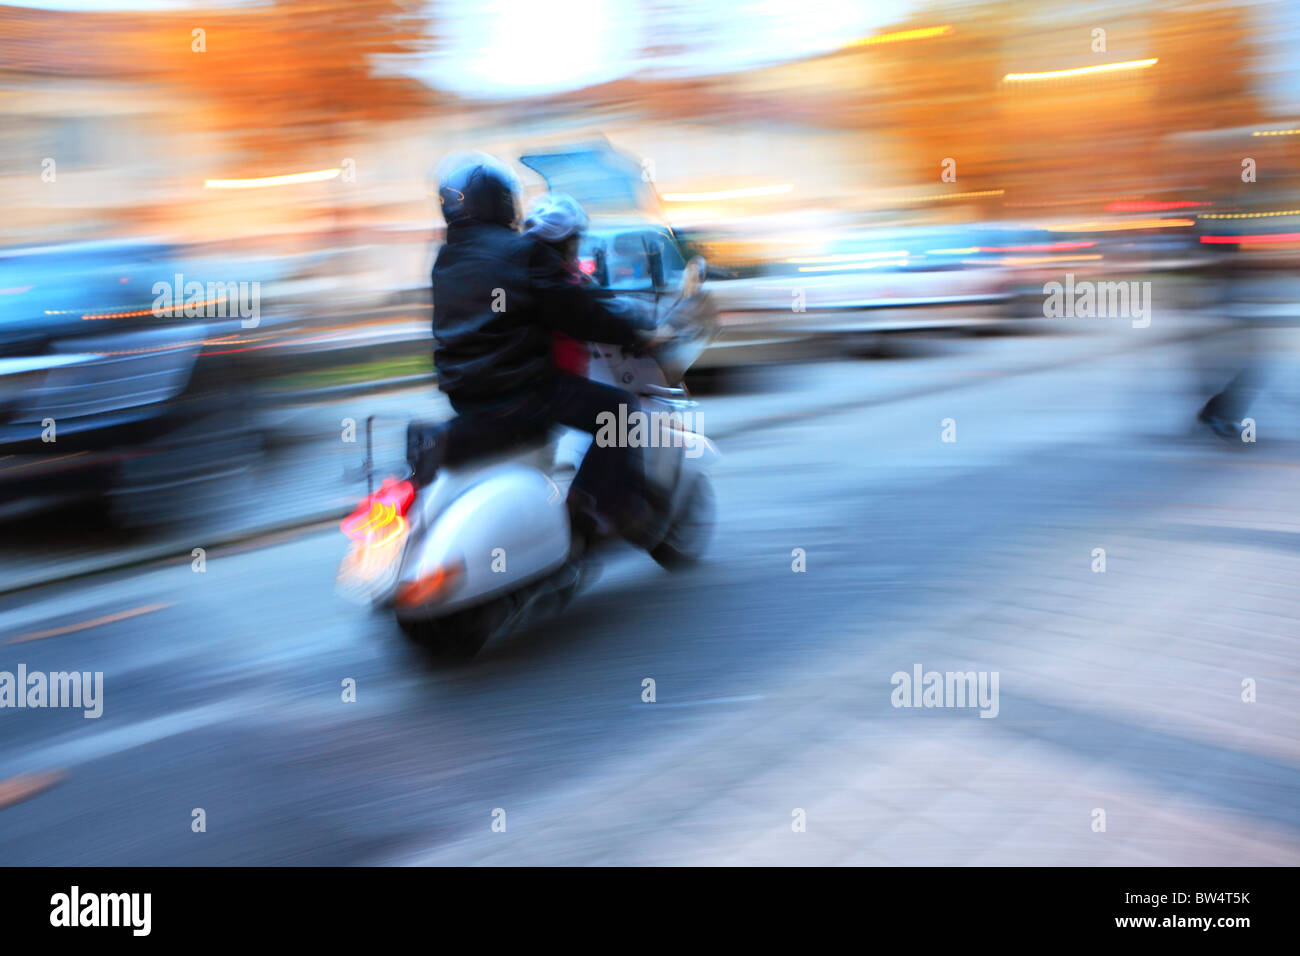 Abstract photo of motorcycle moving on the street. - Stock Image